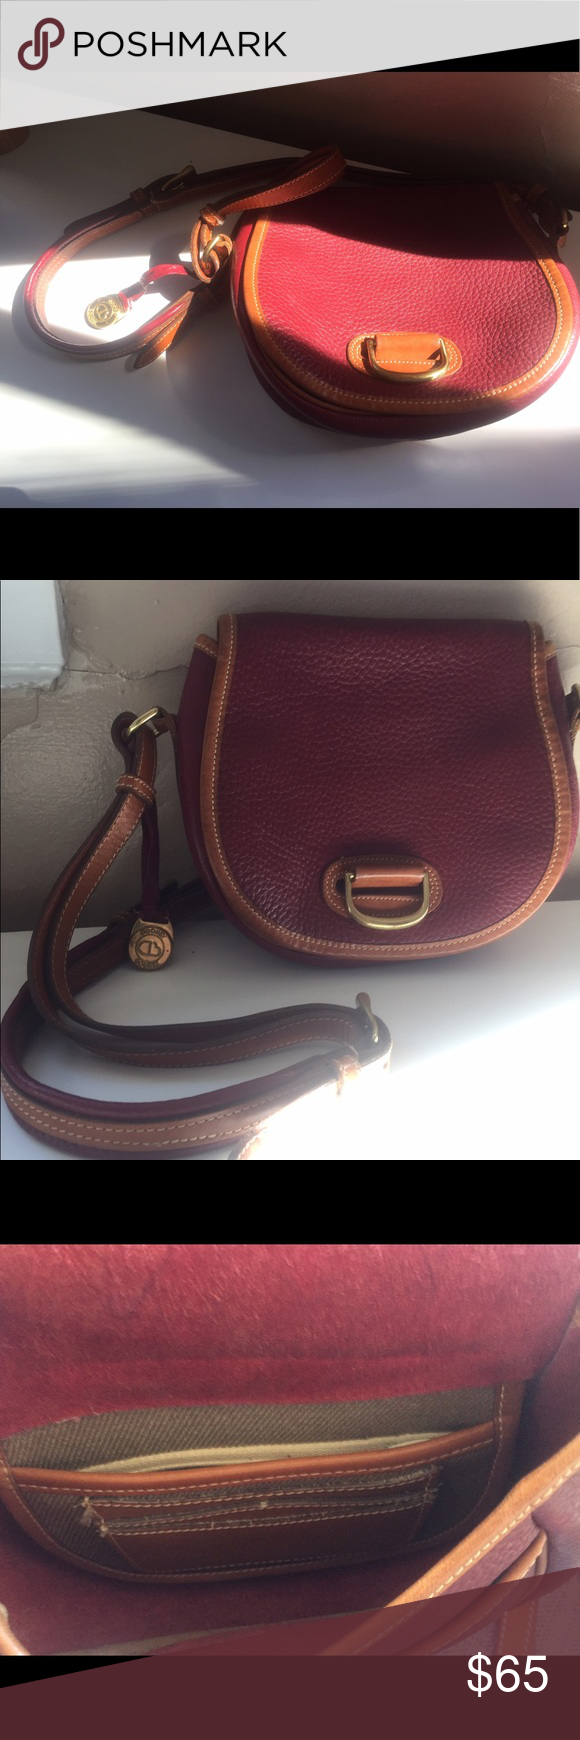 Dooney & Bourke crossbody bag Gorgeous everyday bag, classic lines, oxblood and luggage tan color scheme, brass hardware, D&B charm on leather tassel. Interior pockets for credit cards, interior zipper pocket. Dooney & Bourke Bags Crossbody Bags